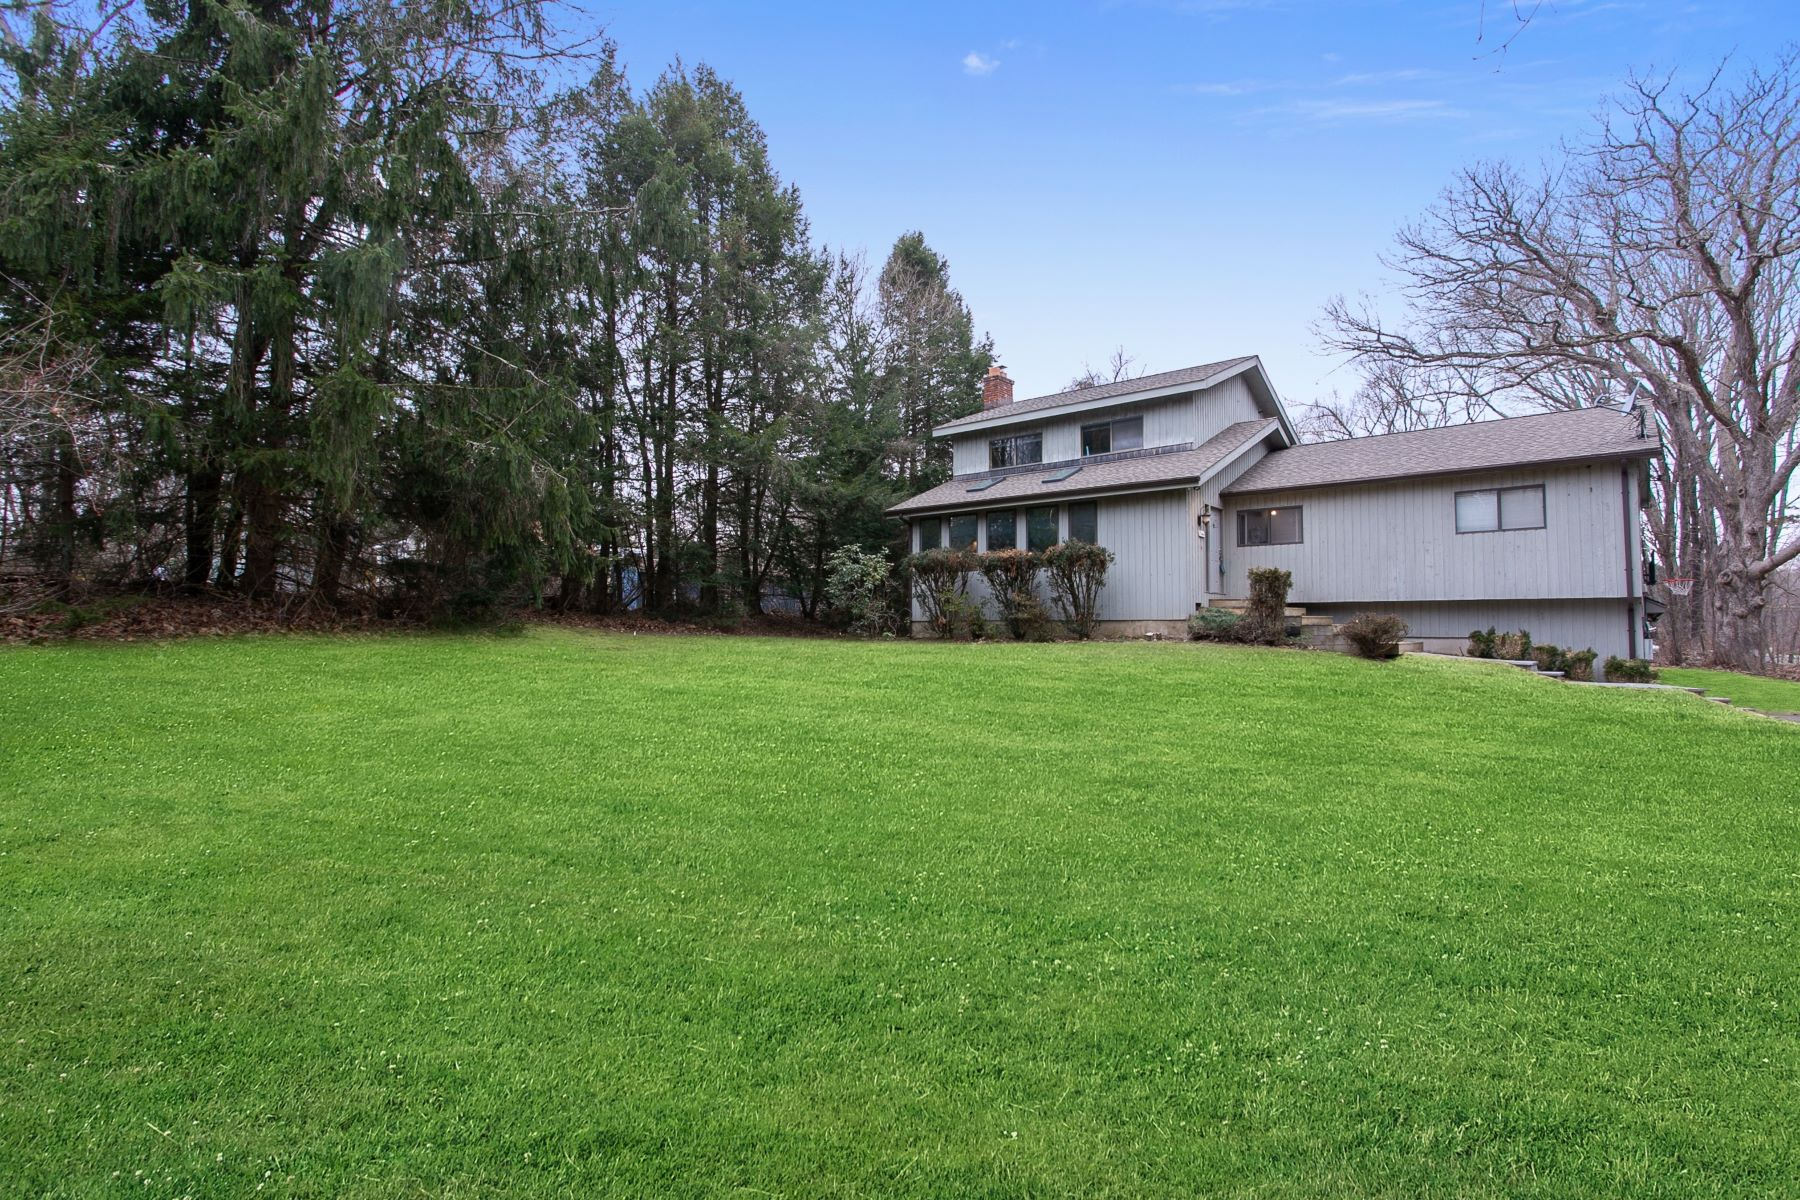 Single Family Homes for Sale at Wonderful Home With Level Property 138 Curt Smith Rd, Southbury, Connecticut 06488 United States